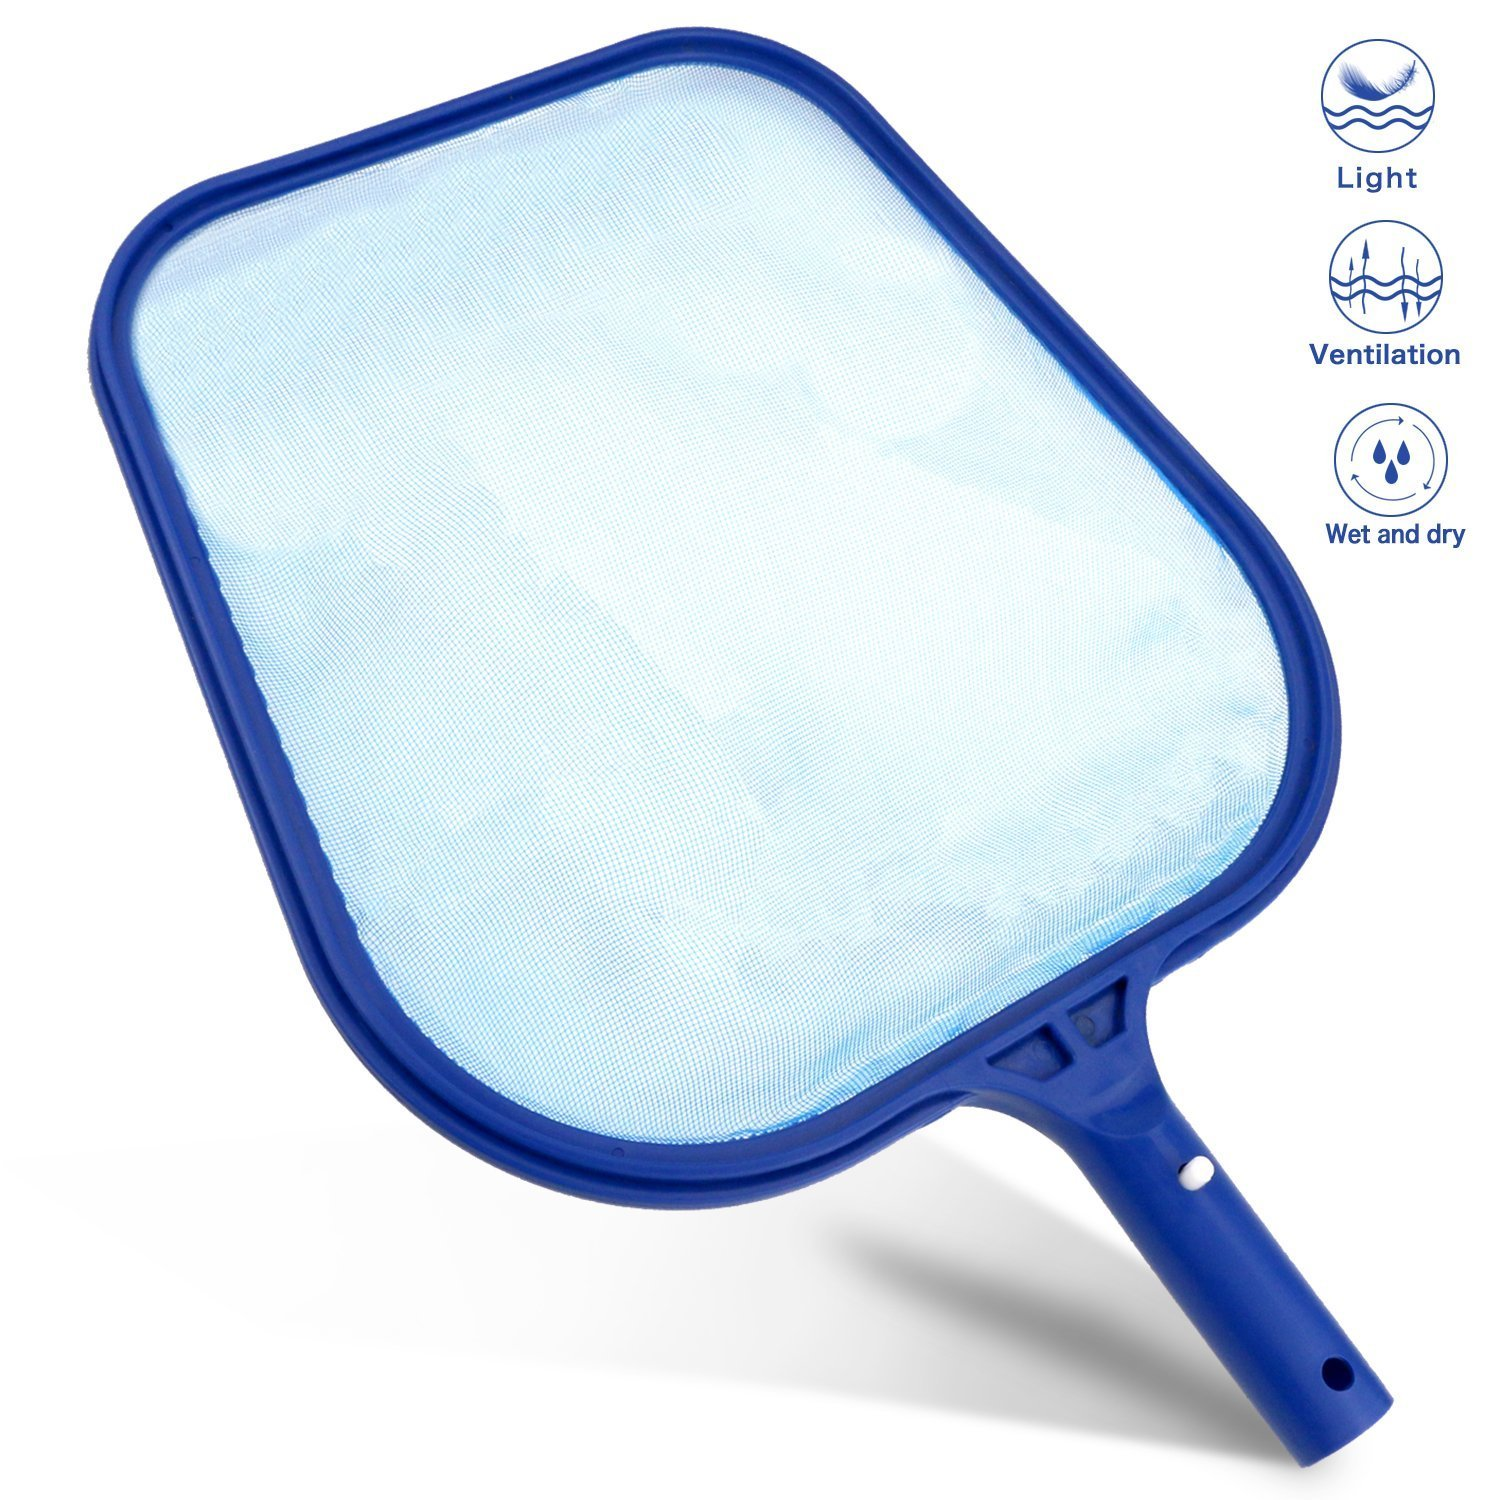 Kungfu Mall Hot Tub Cleaning Kit Accessories Contain Pool Net Paddling Pool Brush and Scrubber Pad All in 1 with a Pair Gloves as a Gift